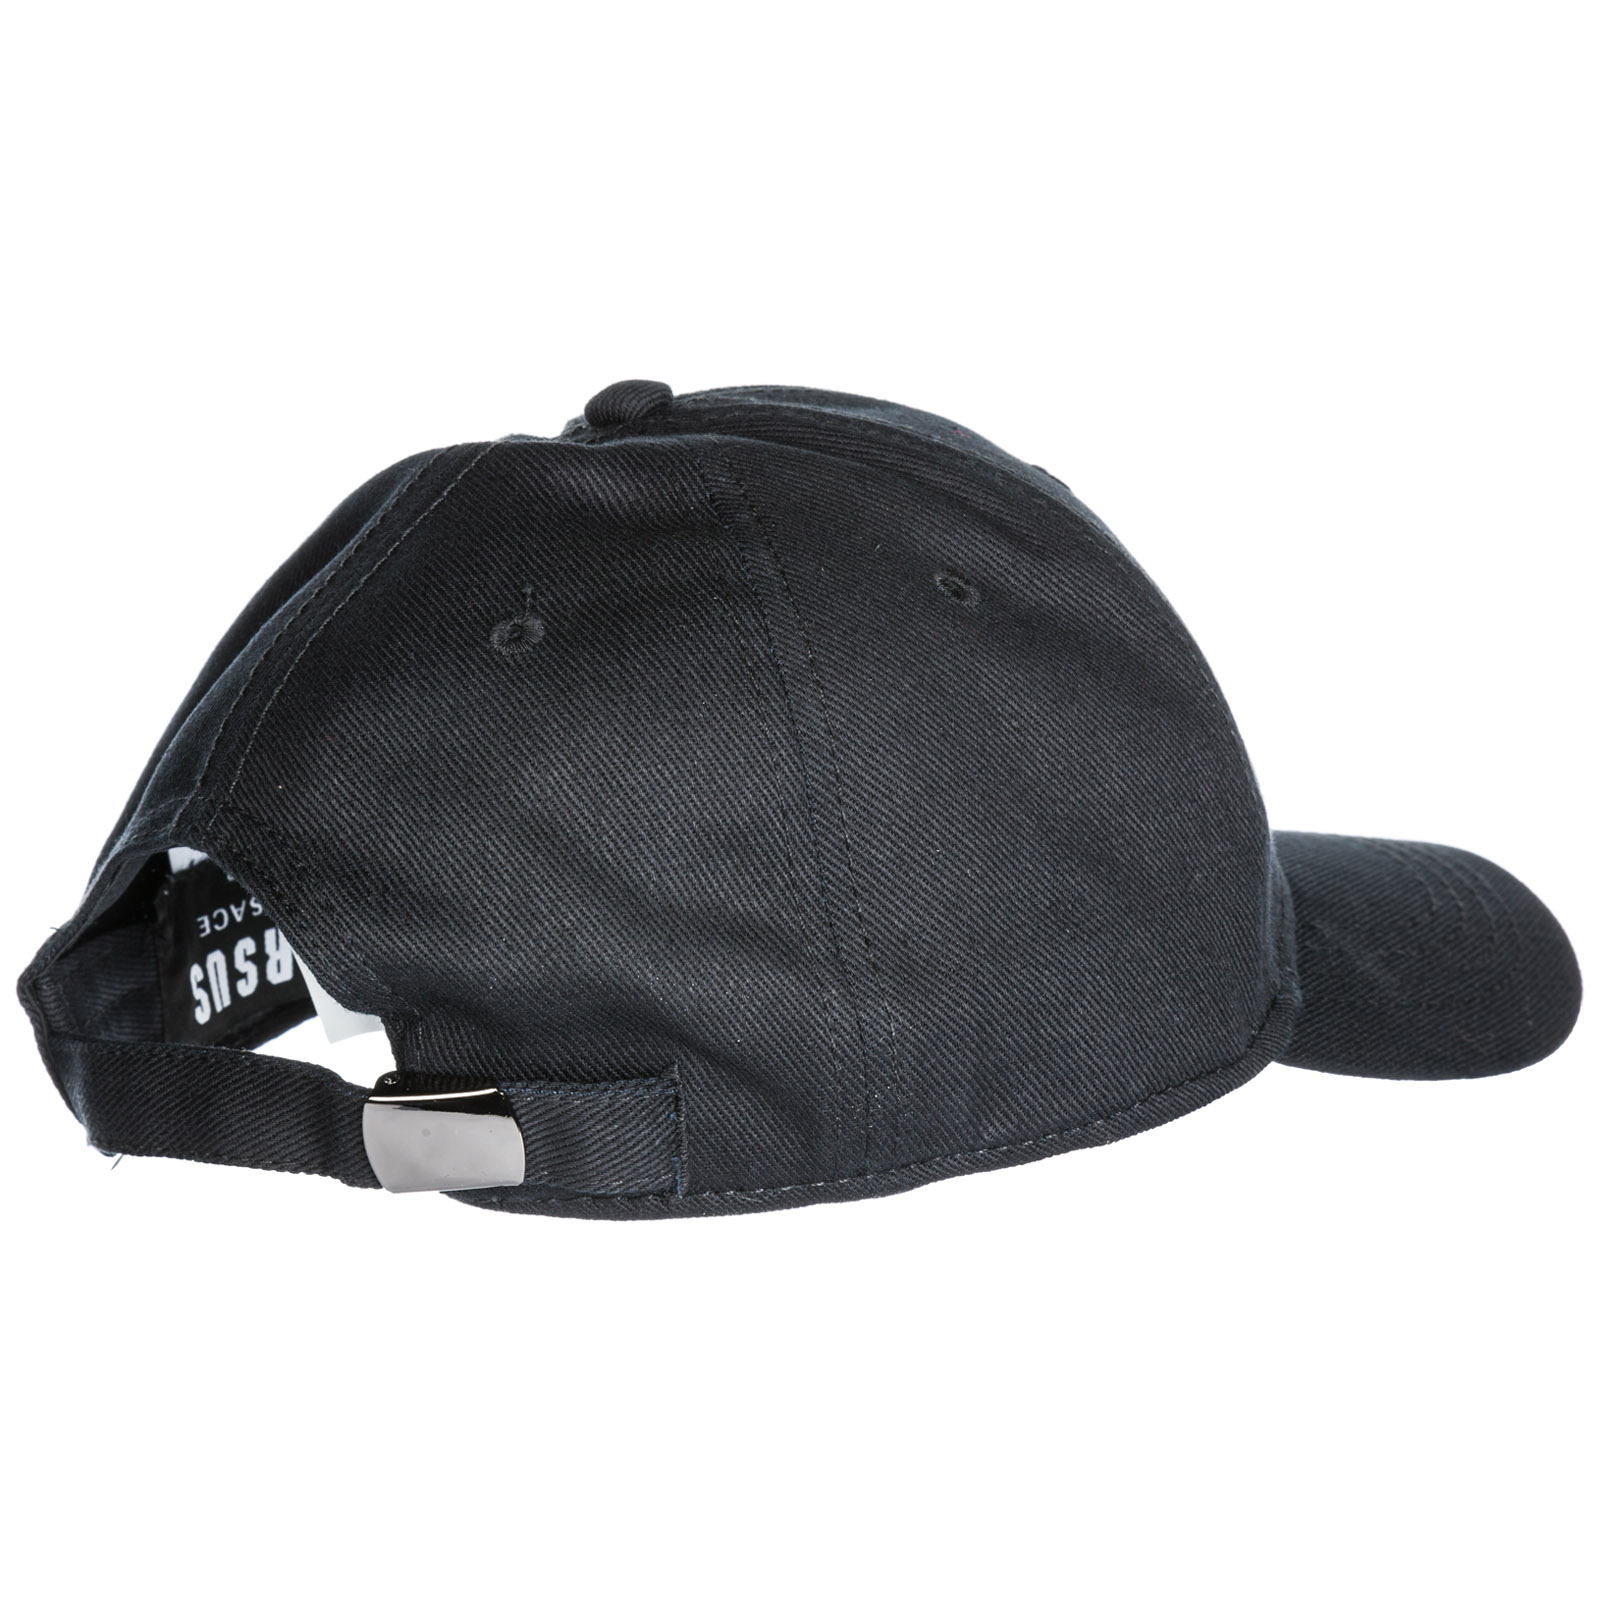 Adjustable men's cotton hat baseball cap